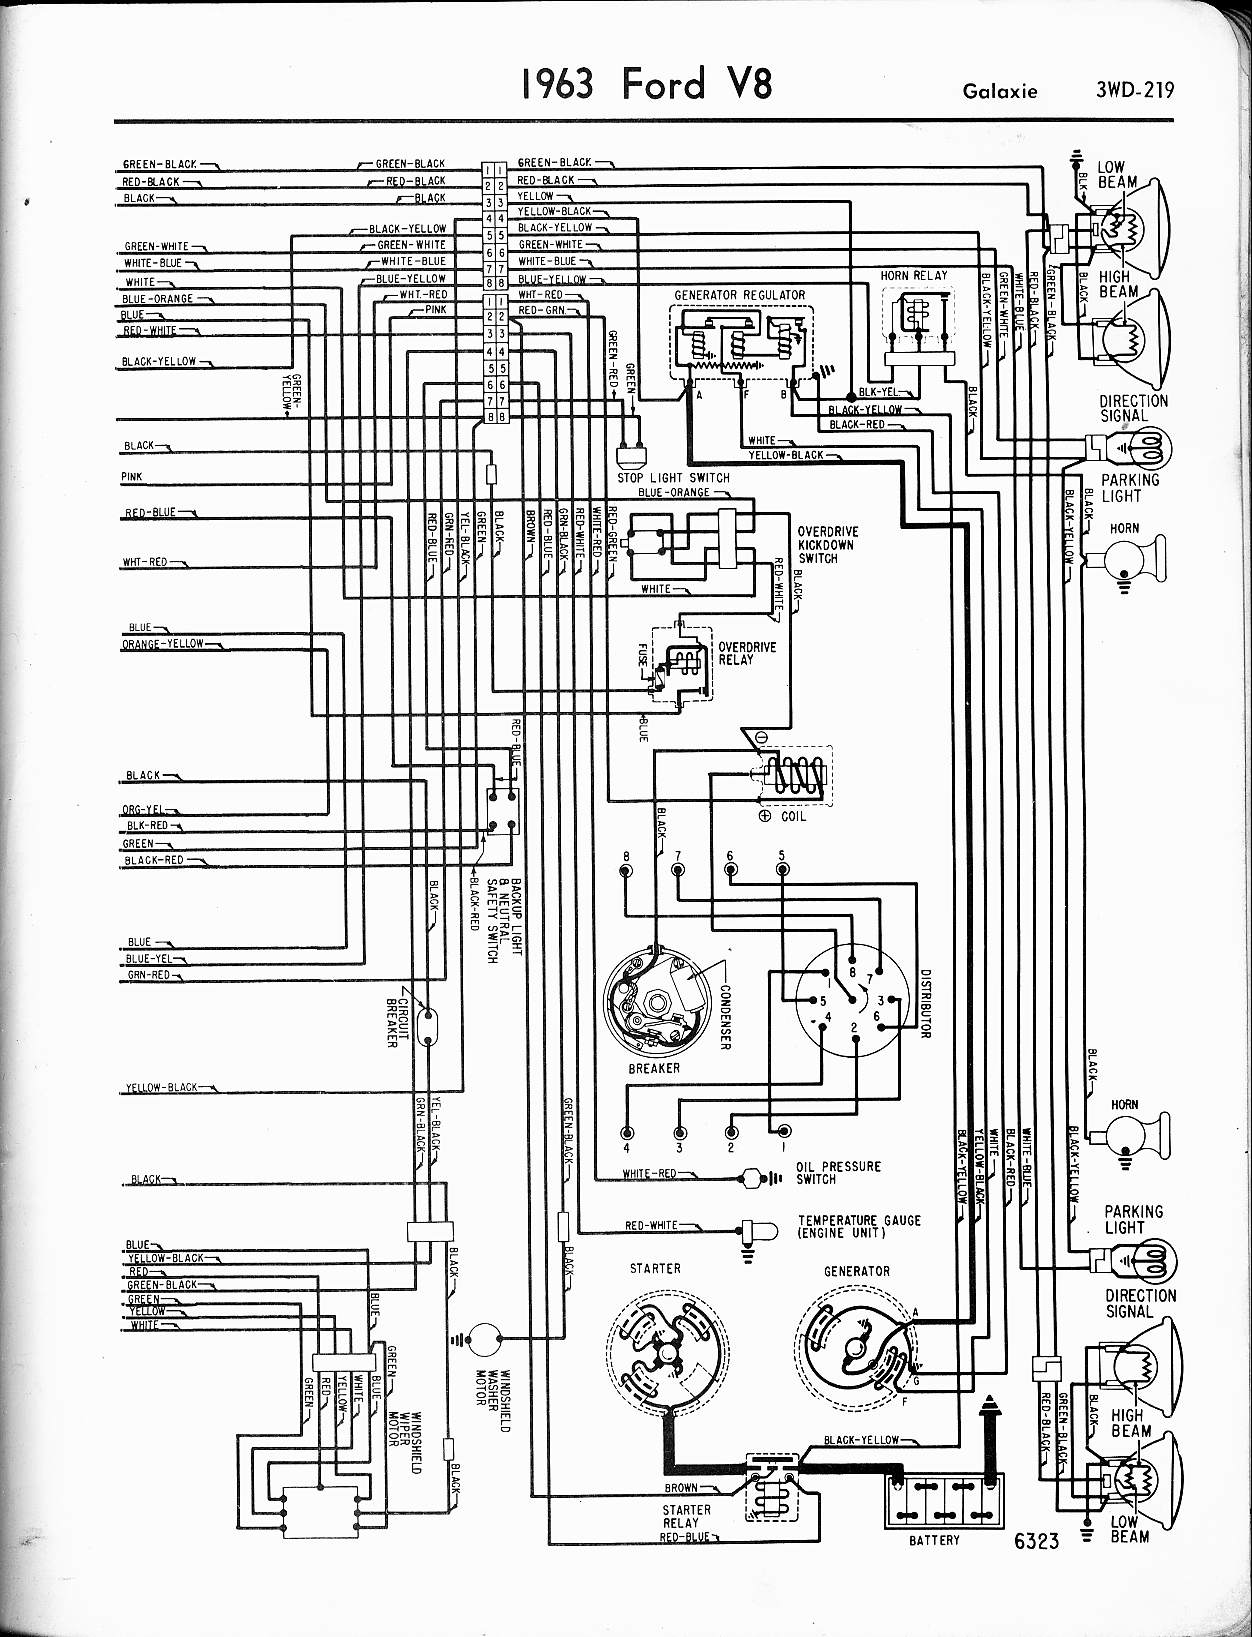 MWire5765 219 57 65 ford wiring diagrams ford 302 distributor wiring diagram at honlapkeszites.co